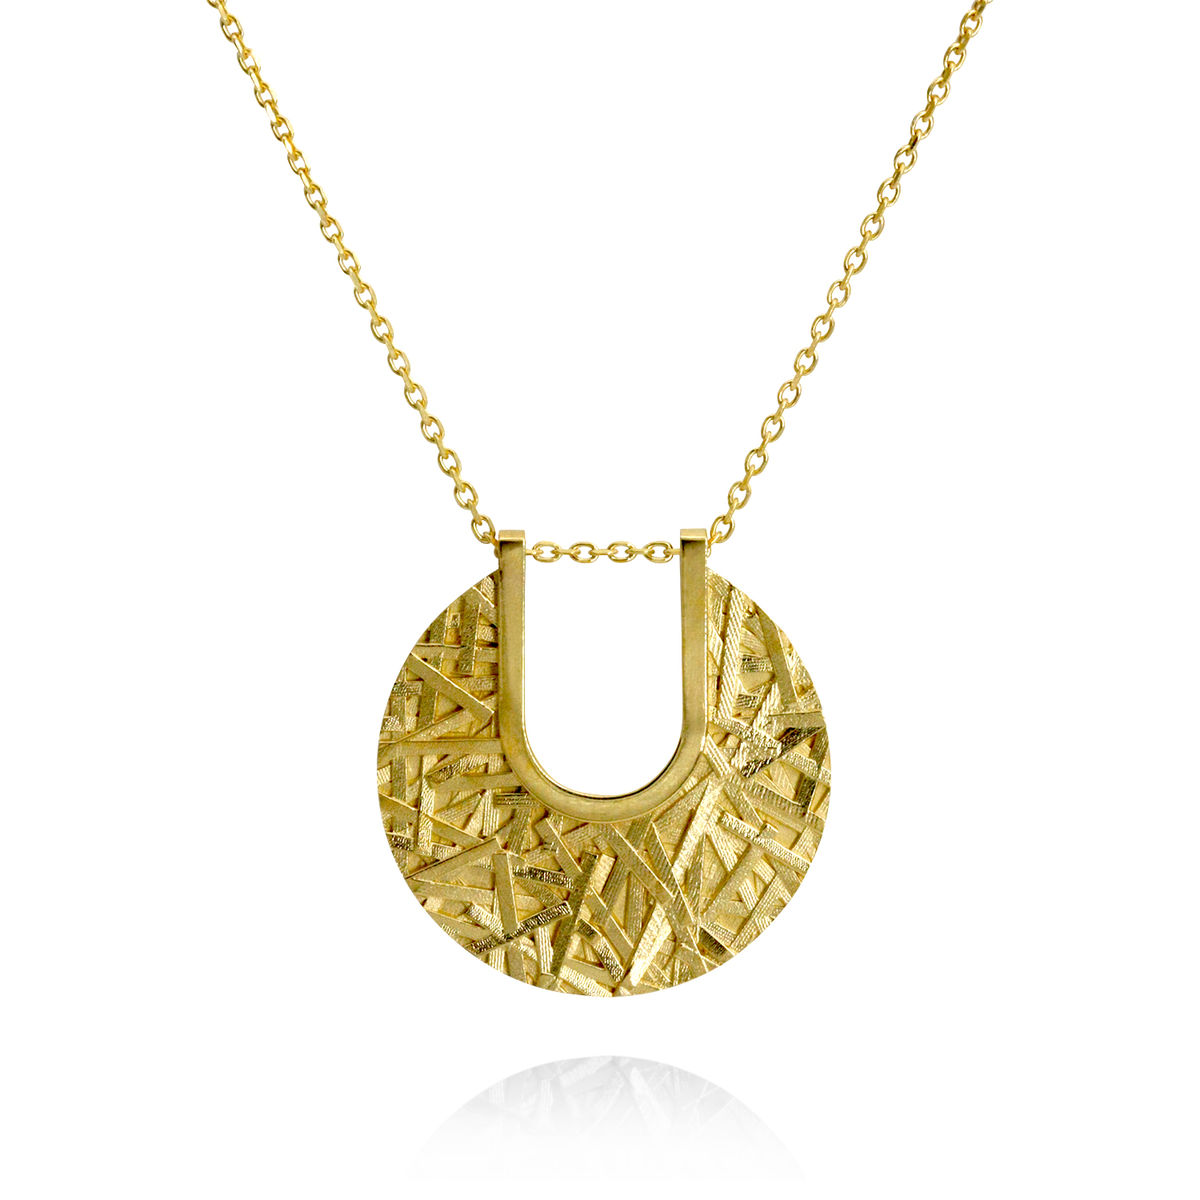 MERGE textured disc pendant - gold-plated sterling silver - product images  of